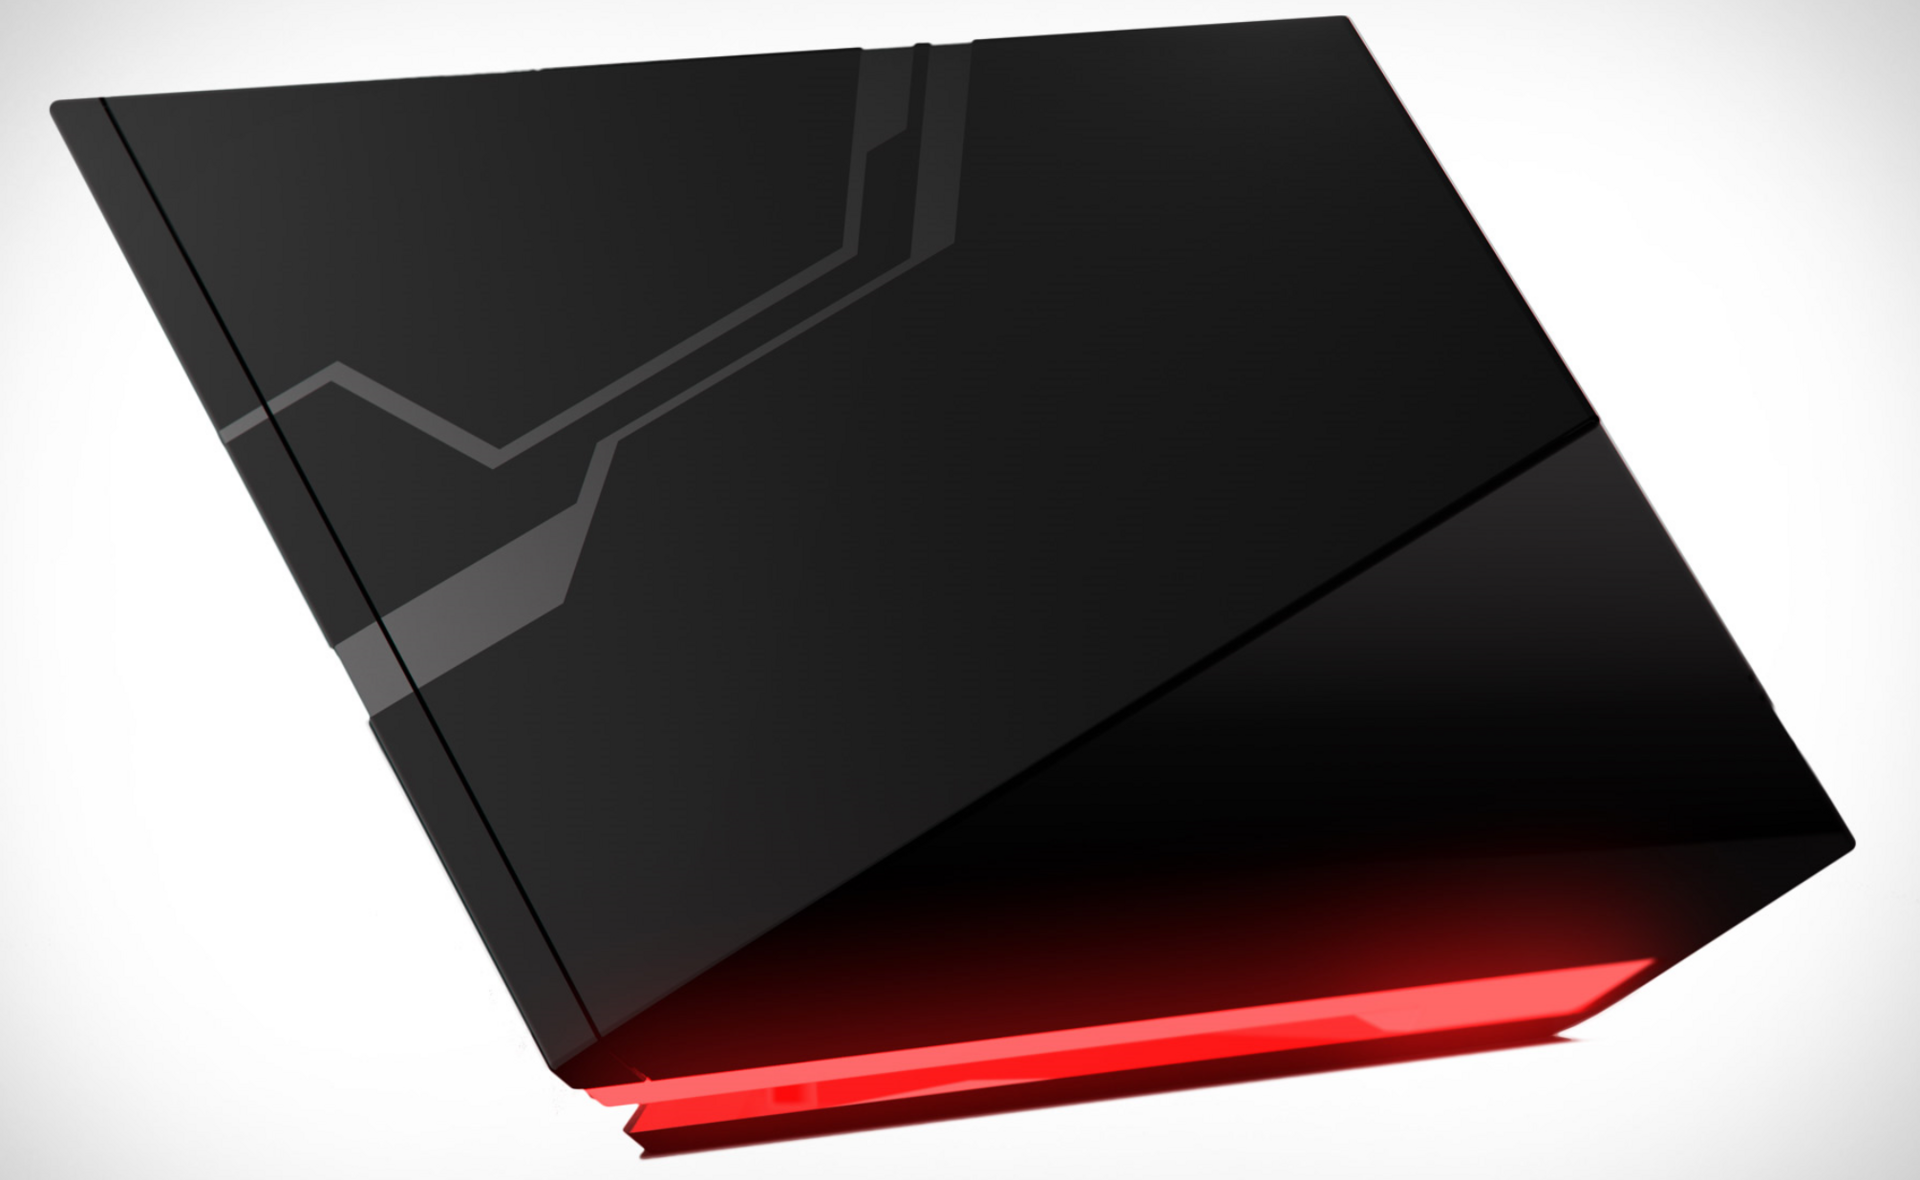 Blade intros Shadow Cloud-based Gaming PC for US$140 plus ...